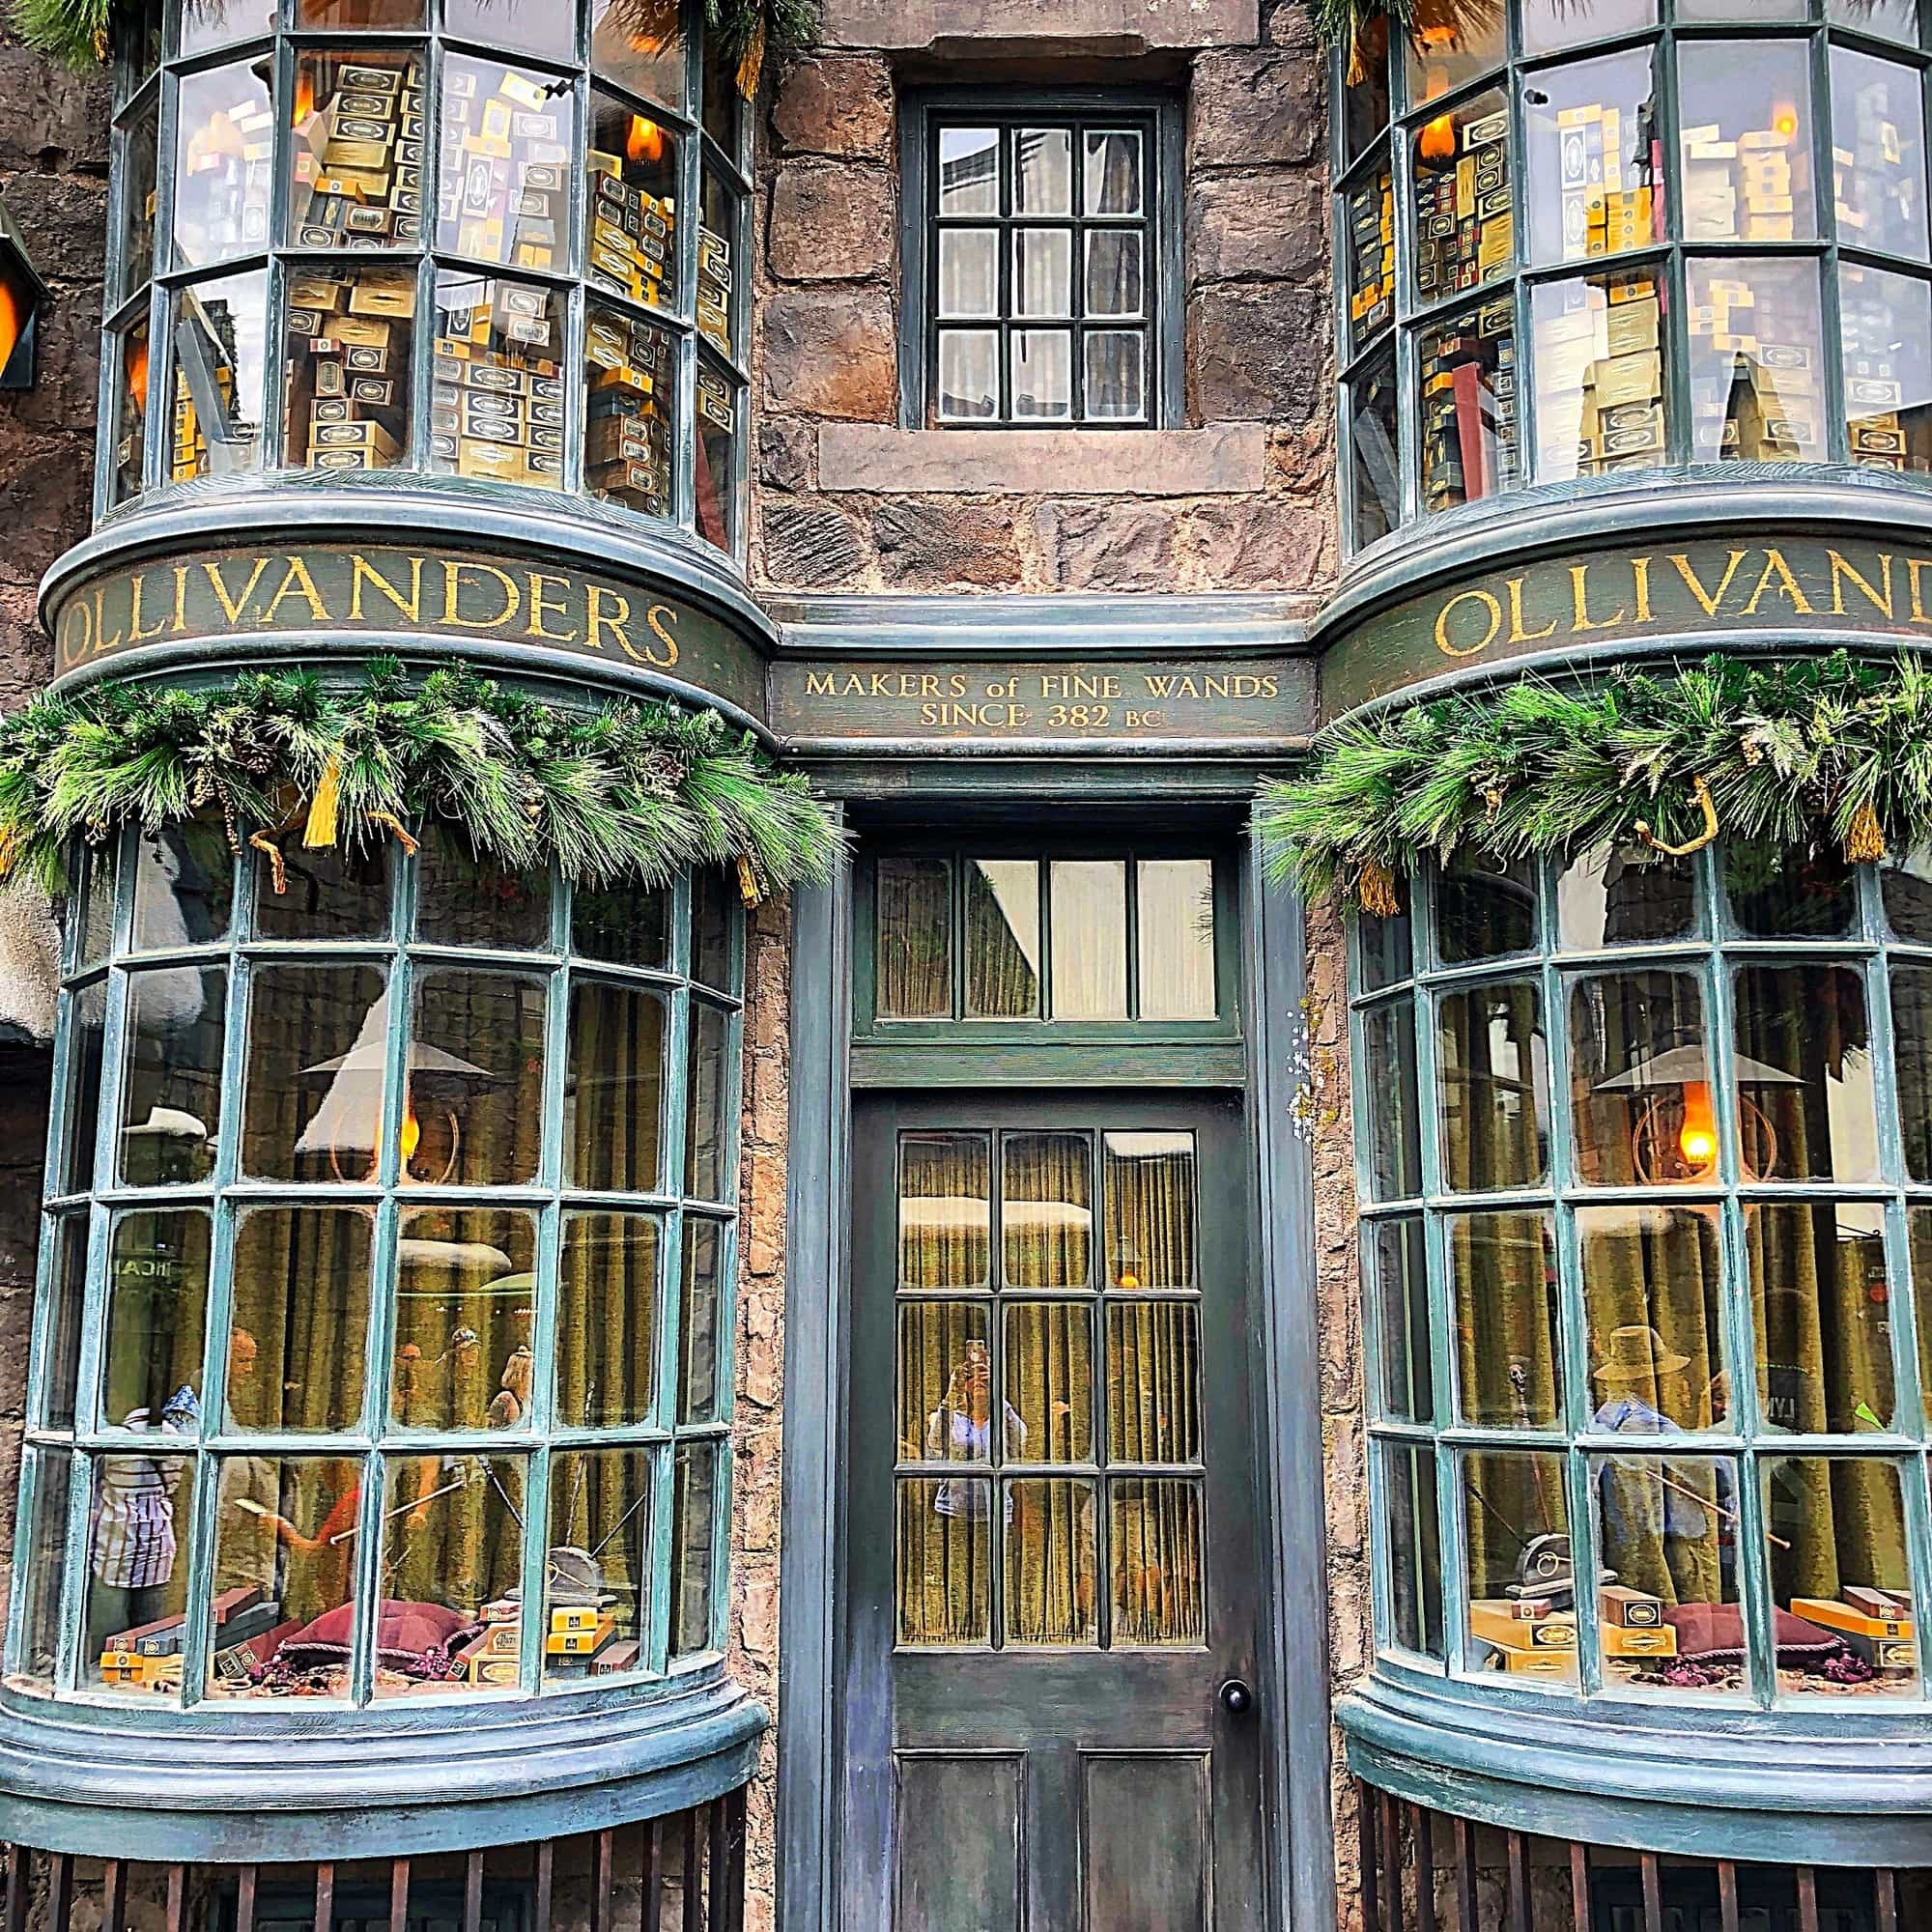 Wizards and witches will want to select a wand at Ollivanders